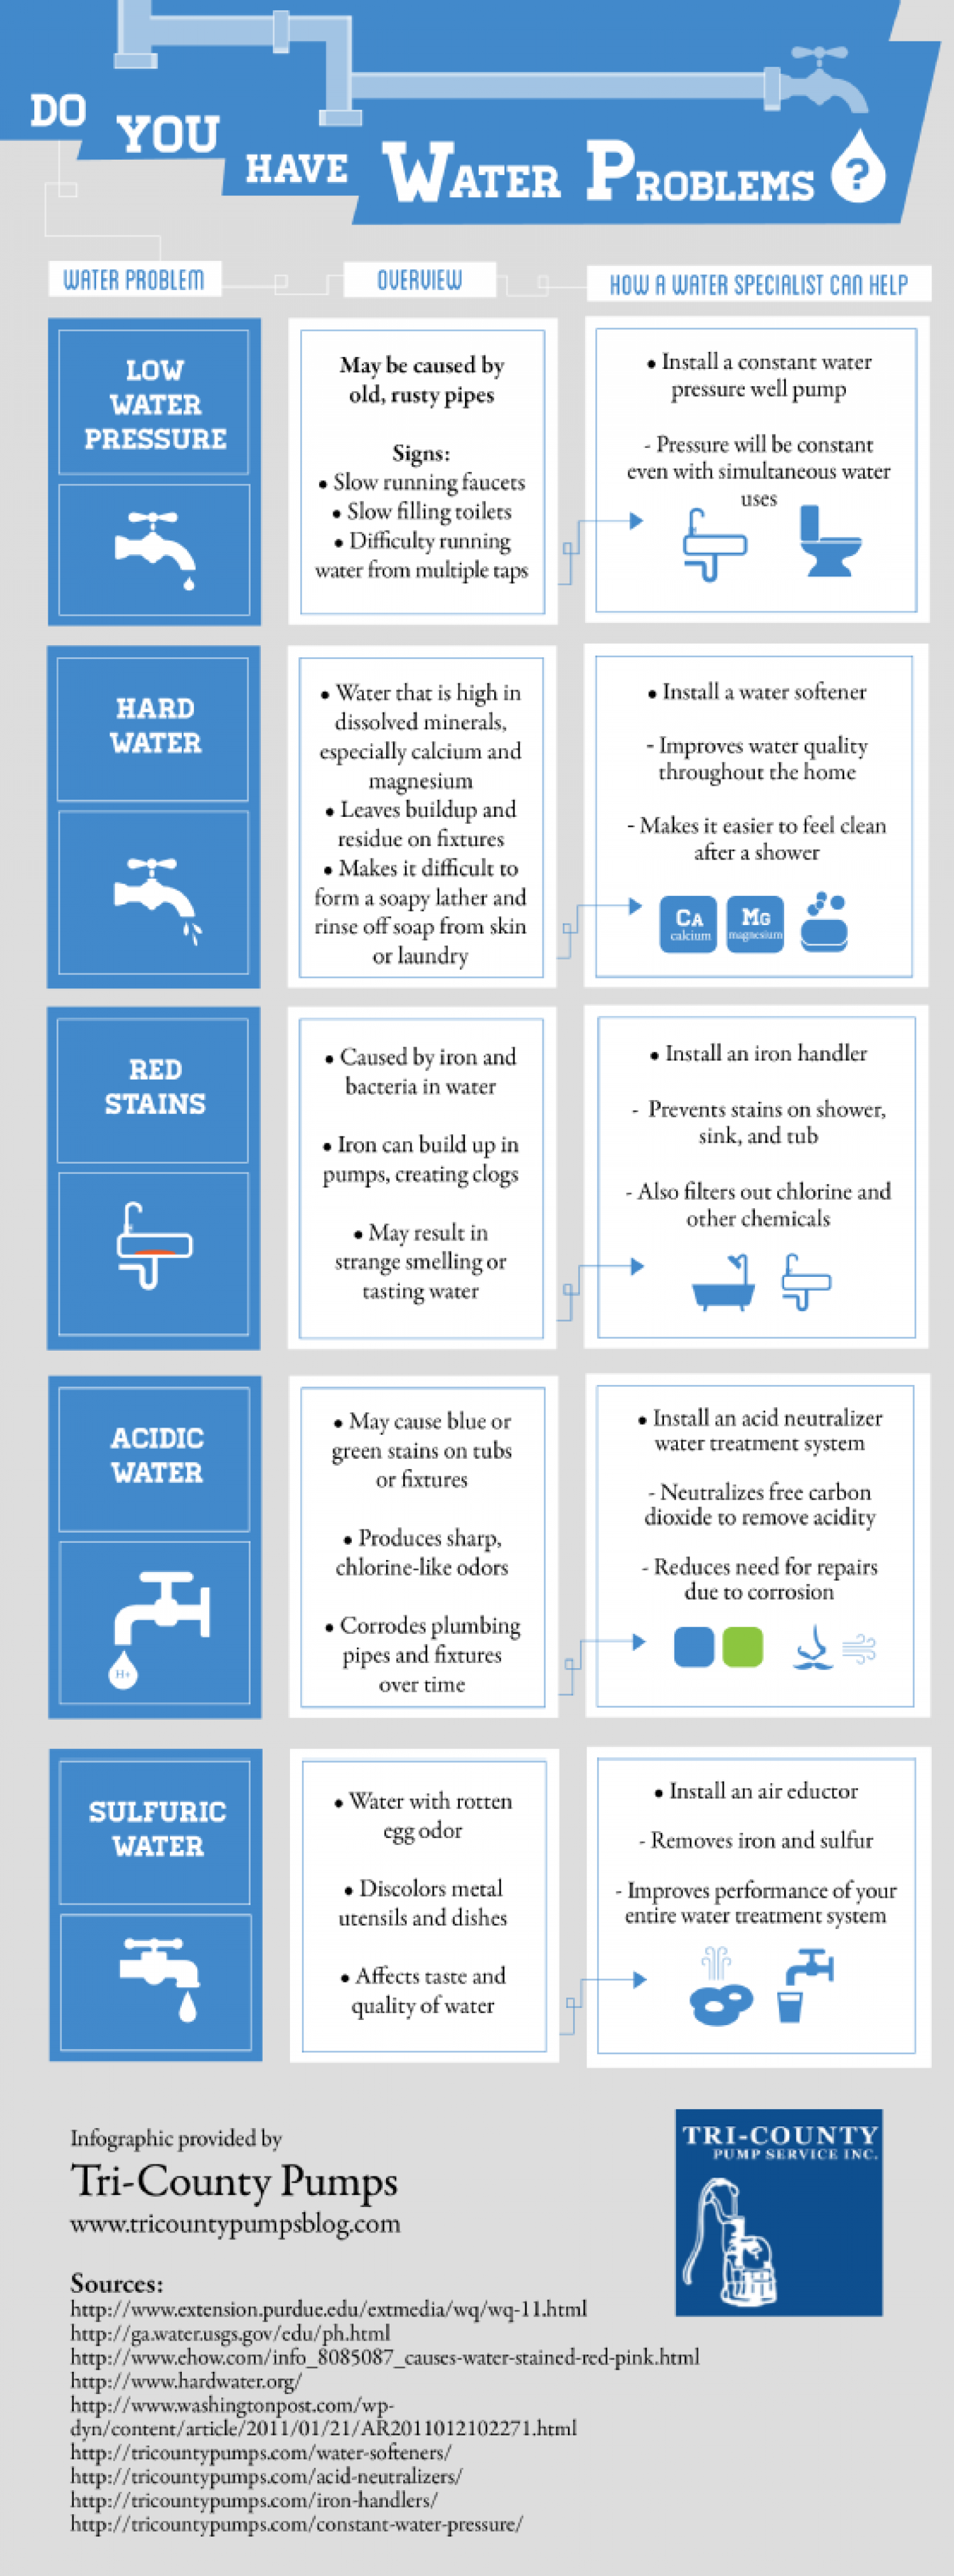 Do You Have Water Problems? Infographic